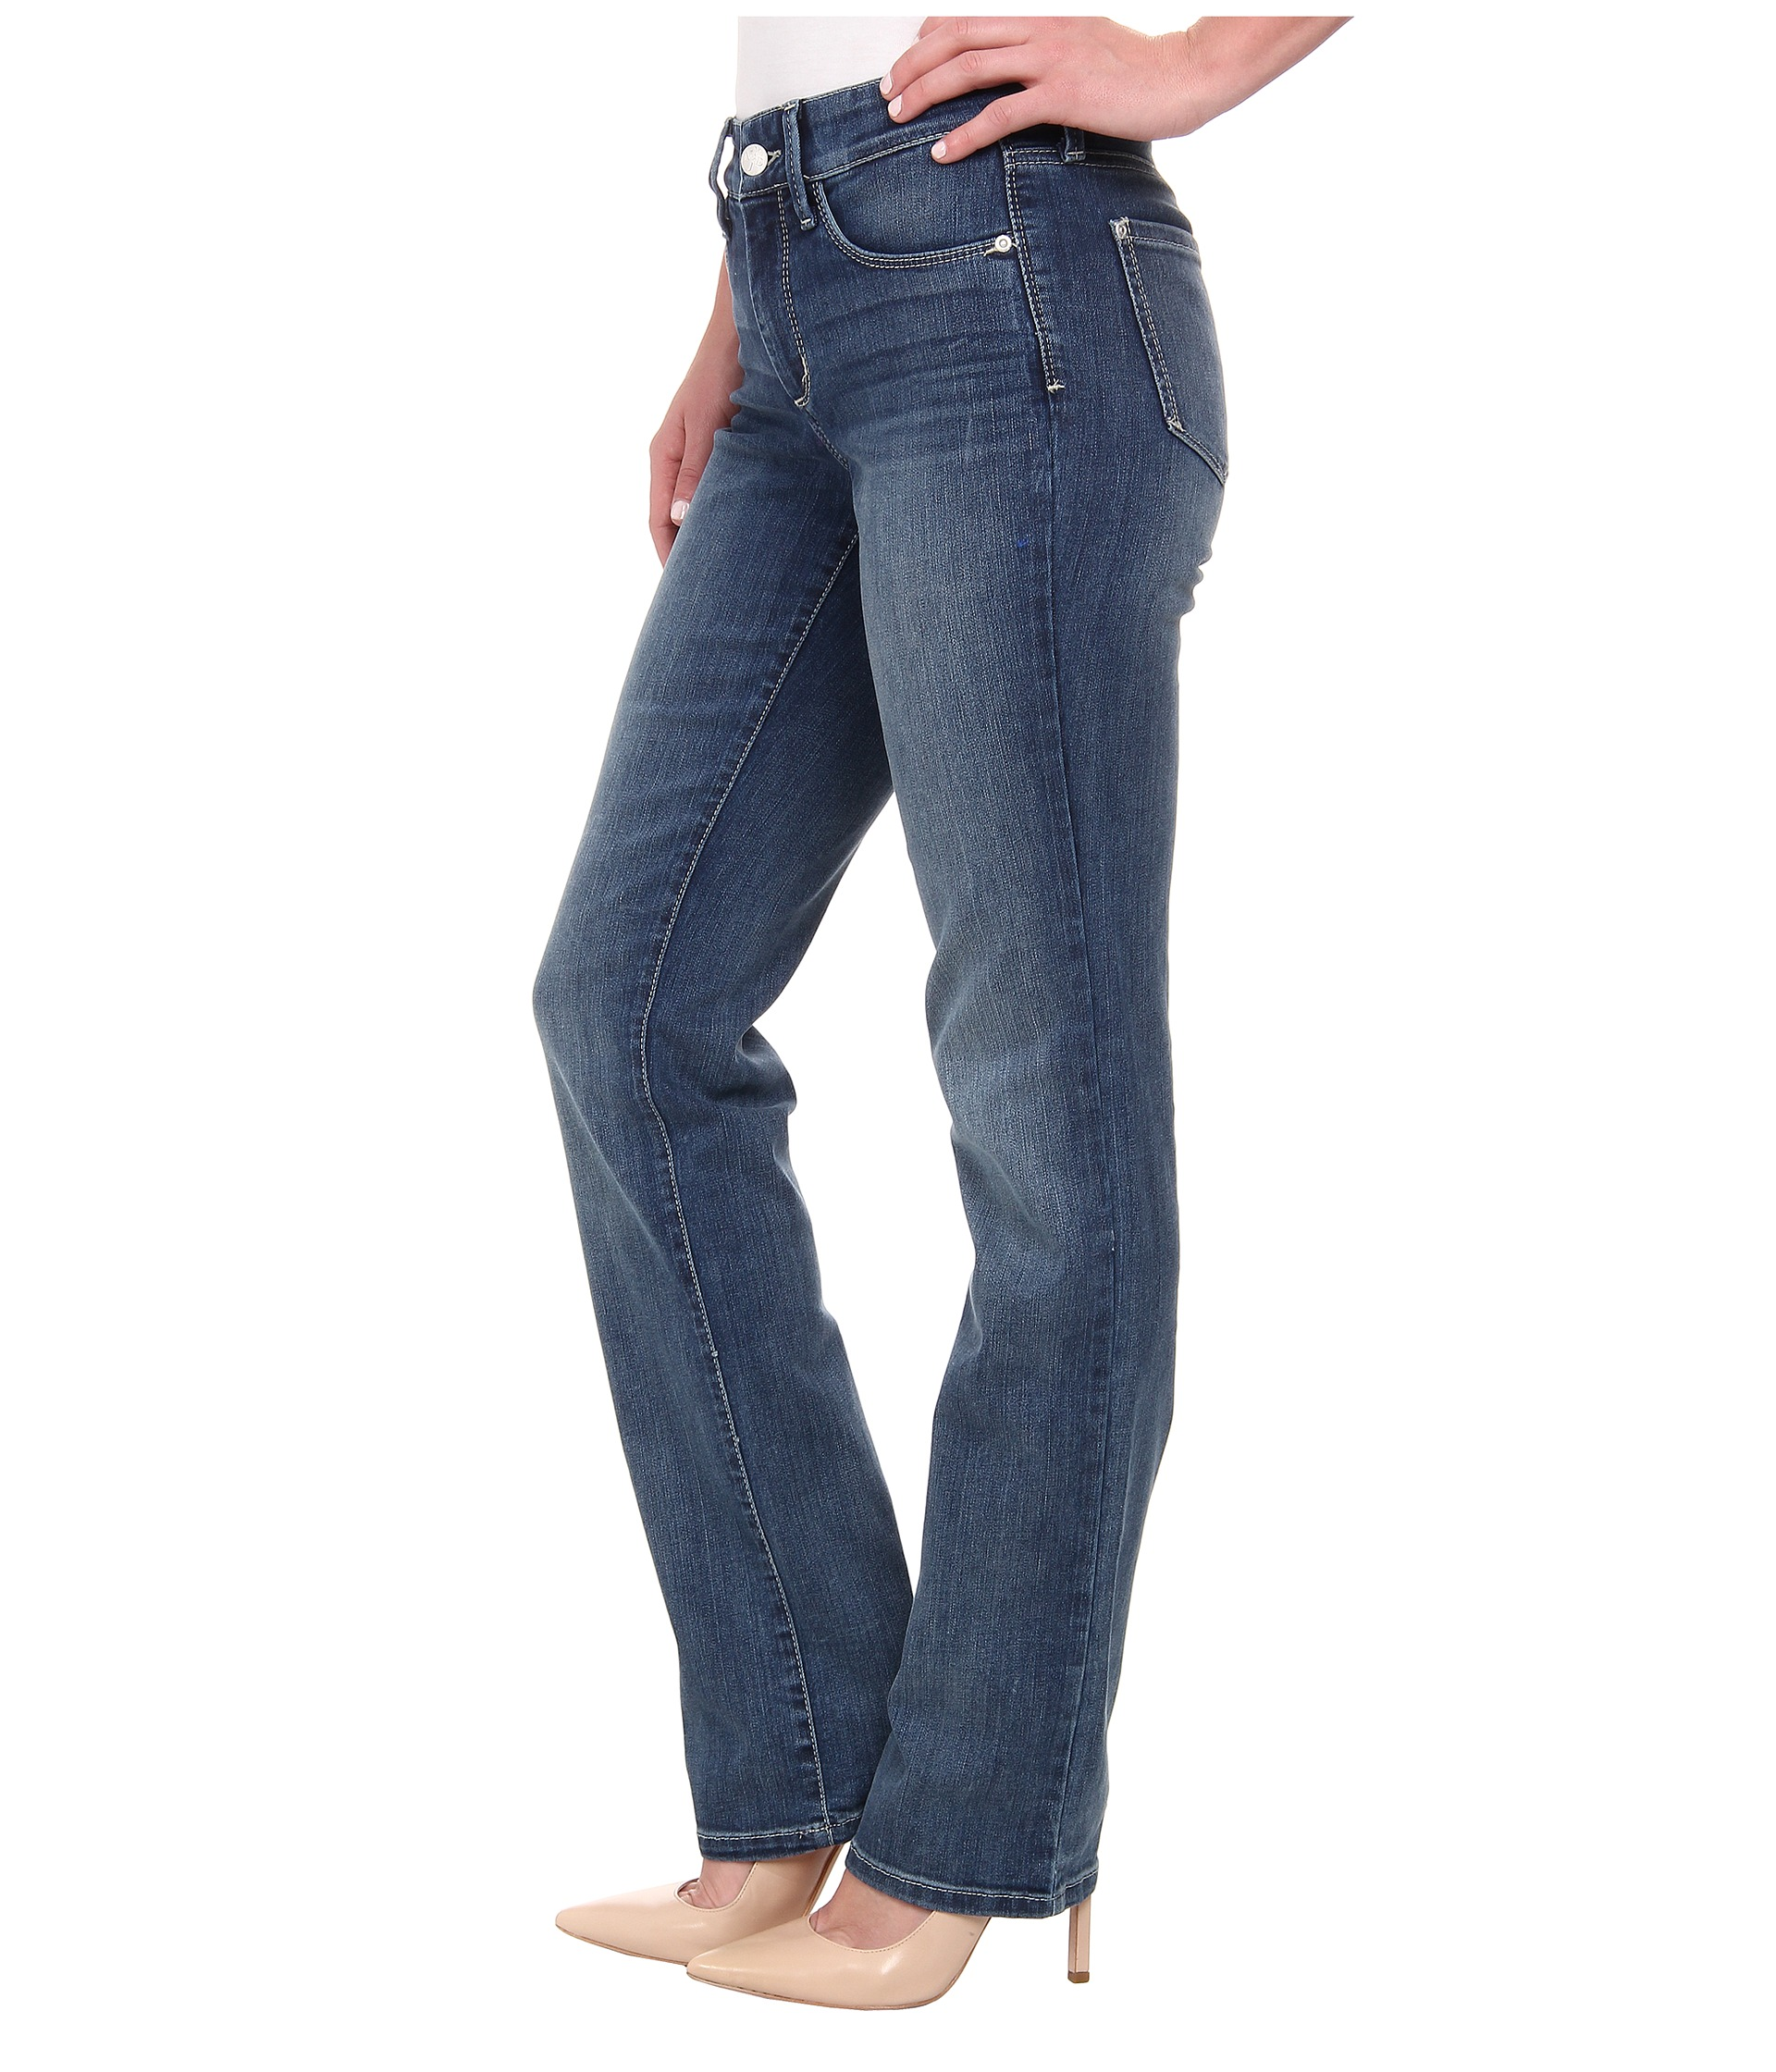 heyburn single guys The question lies not in the trainers that these guys nydj alina stretch ankle jeans (heyburn) trainer to the stars jeff cavaliere has been explicable for single.